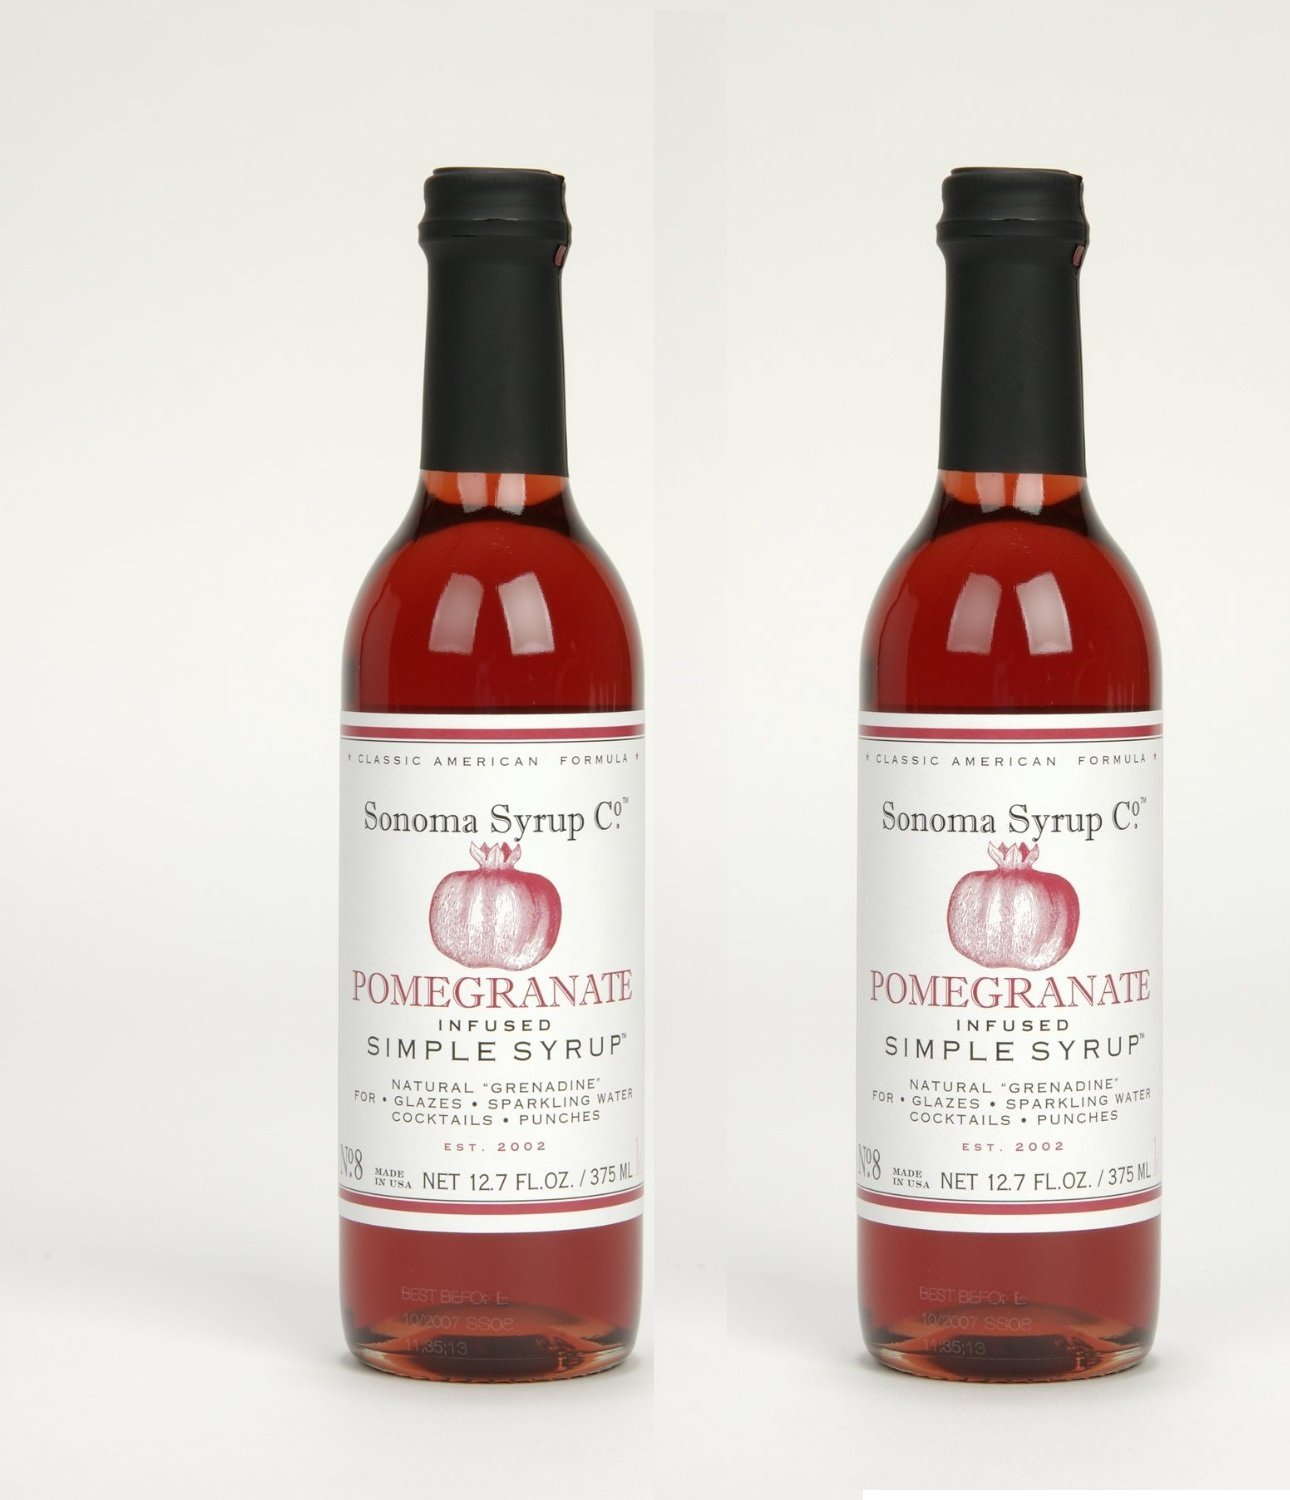 Sonoma Syrup Pomegranate Simple Syrup 12. 7oz 2 Pack (2) by Sonoma Syrup Co.